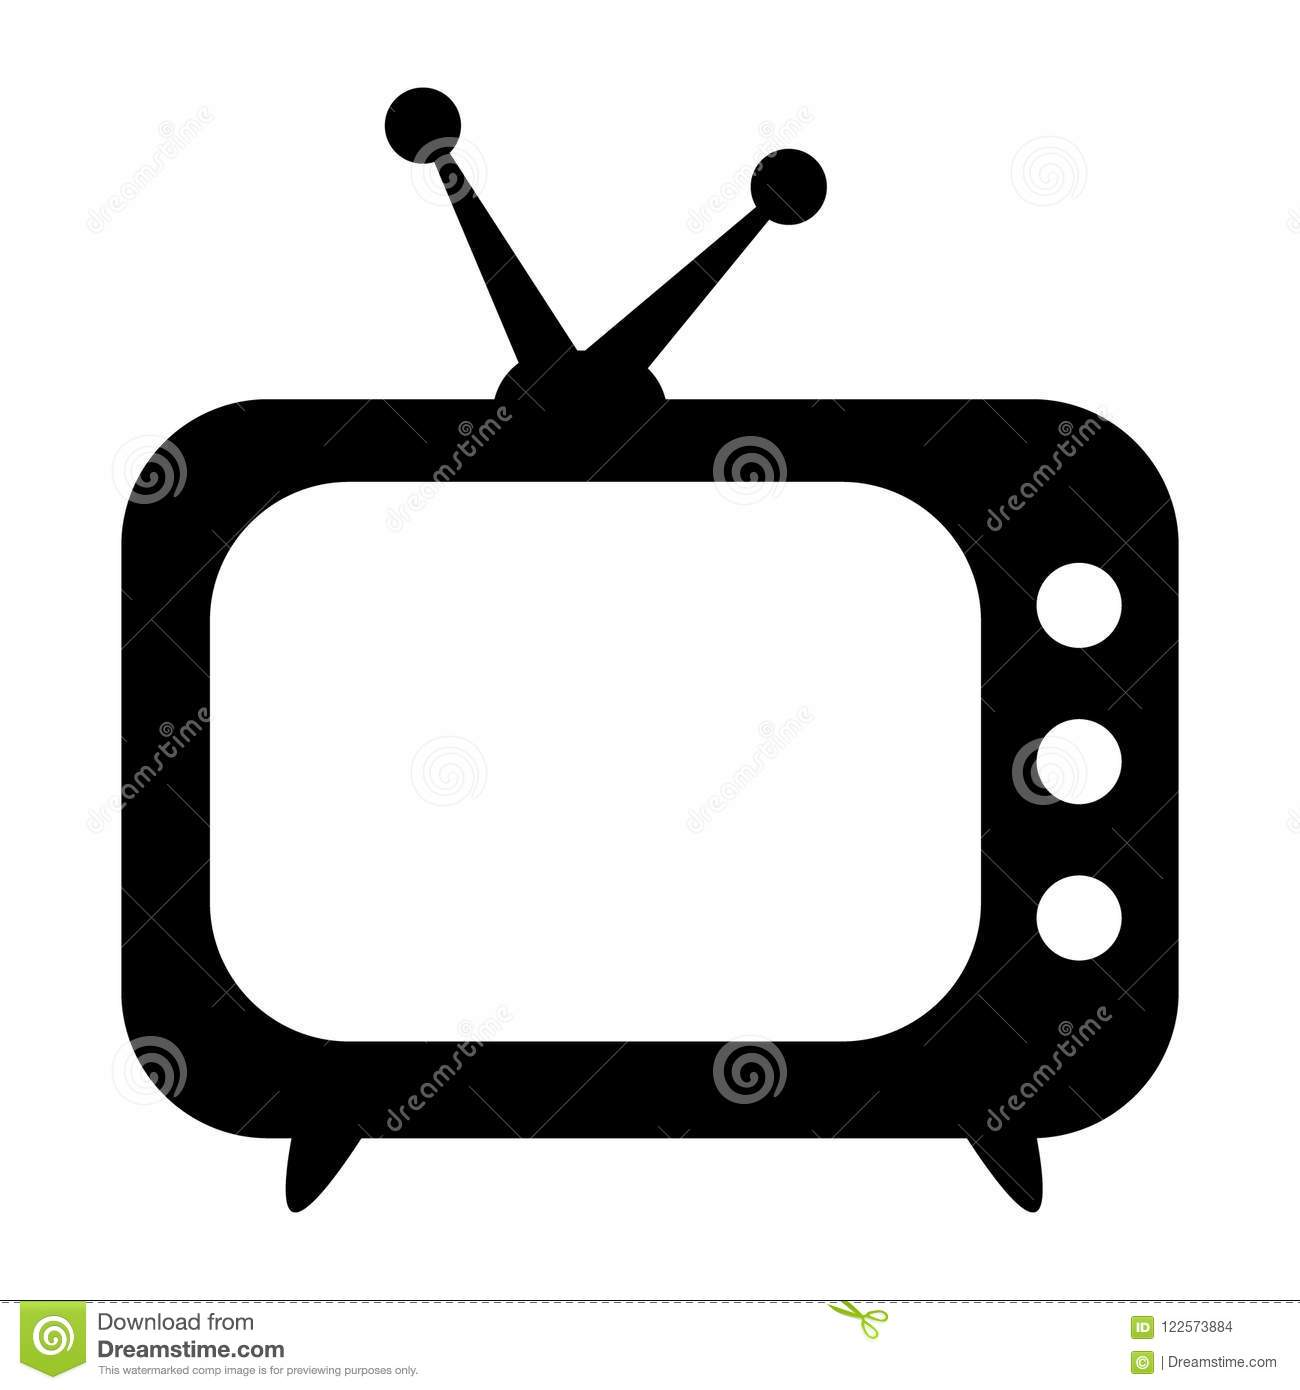 TV-pictogram, retro TV